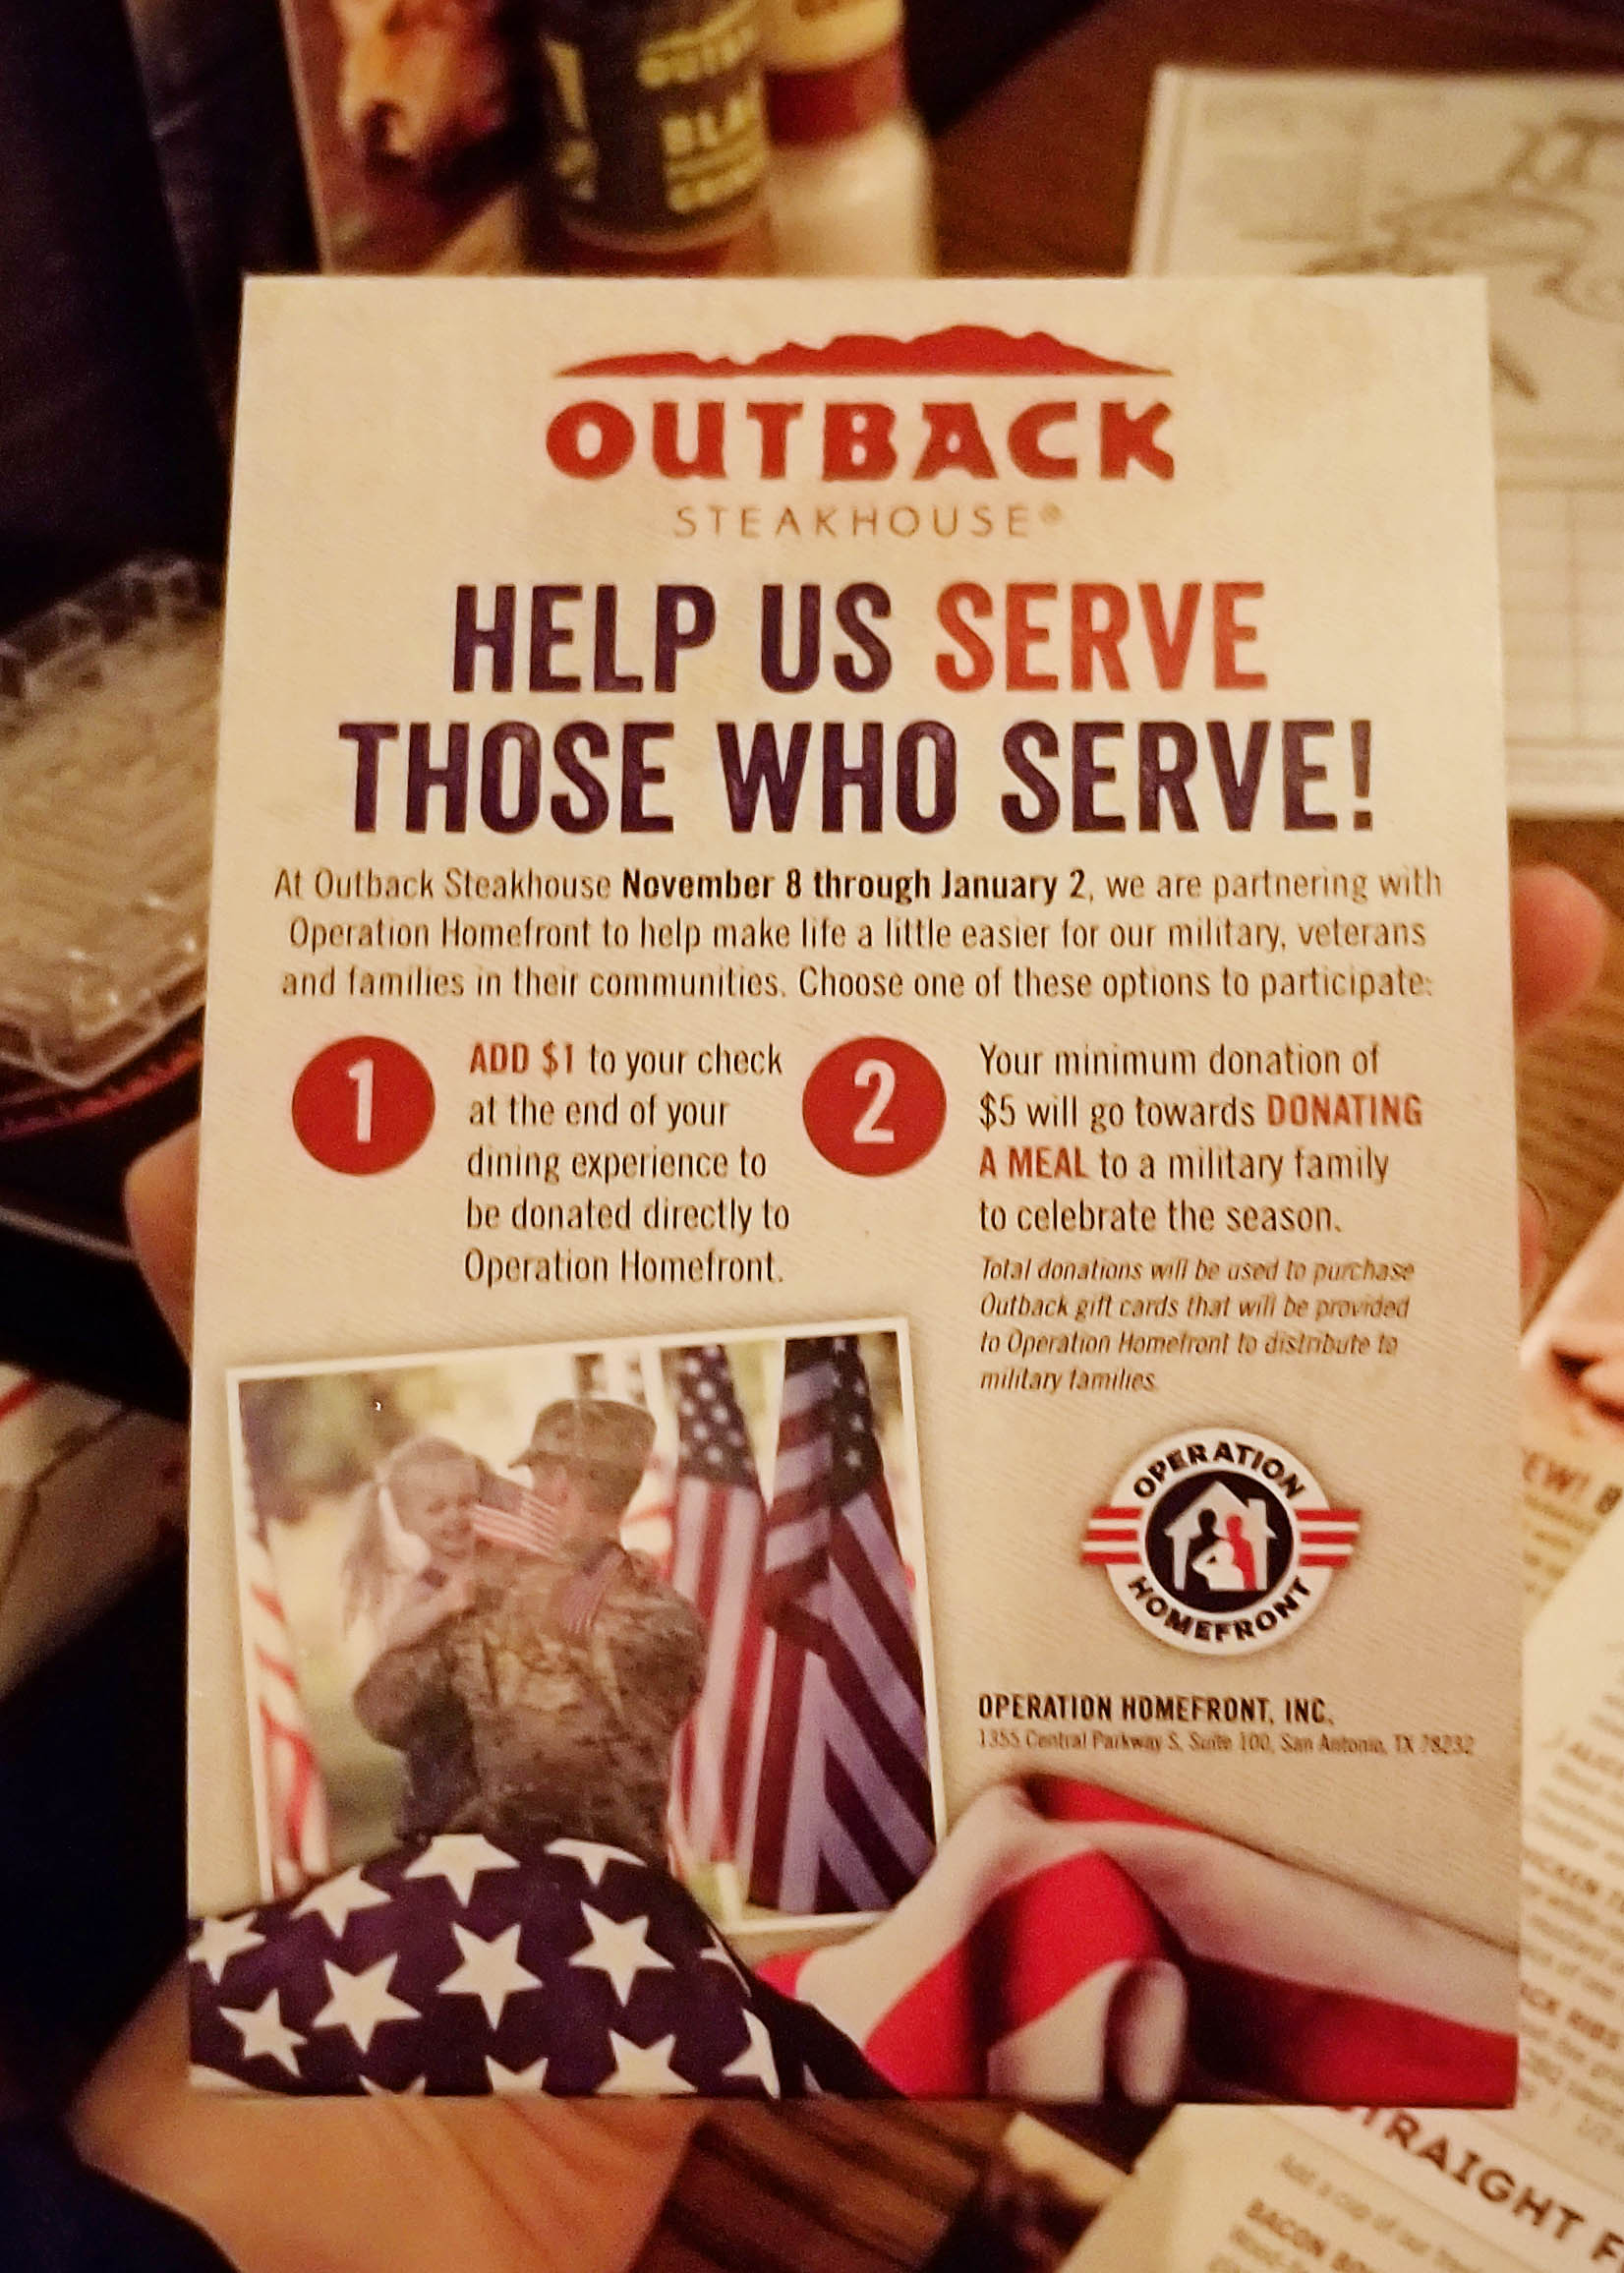 Sturdy For More Information On Outback Visit M On Celebrating Holidays At Outback Steakhouse Outback To Go Gandy Outback To Go Promo Code nice food Outback To Go